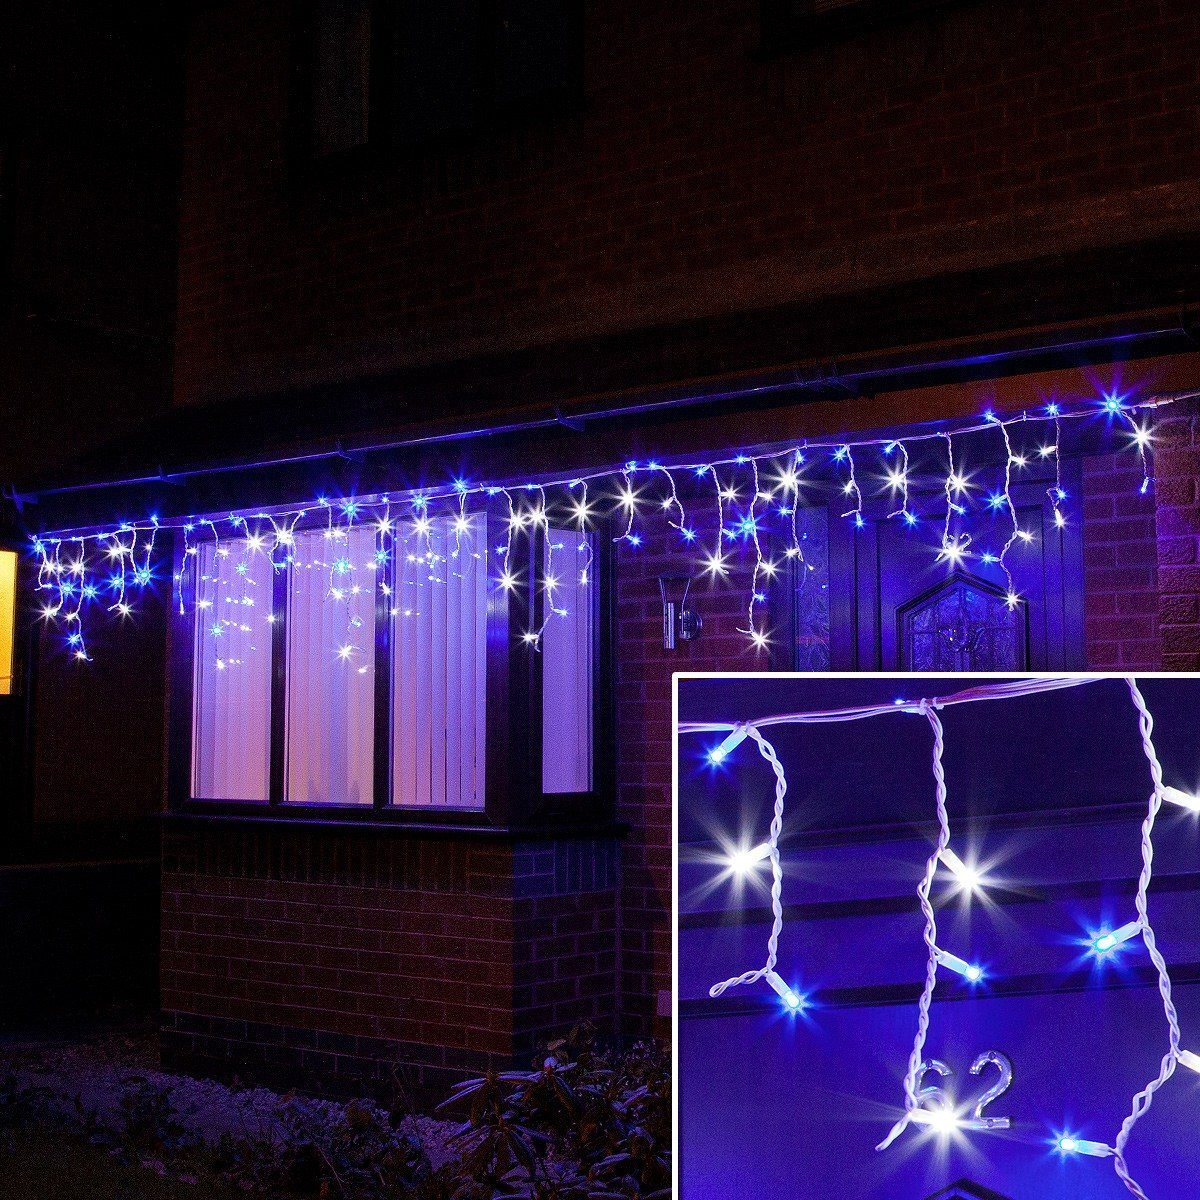 ConnectPro MV011 5M Blue & White Outdoor LED Icicle Lights, Connectable, White Rubber Cable